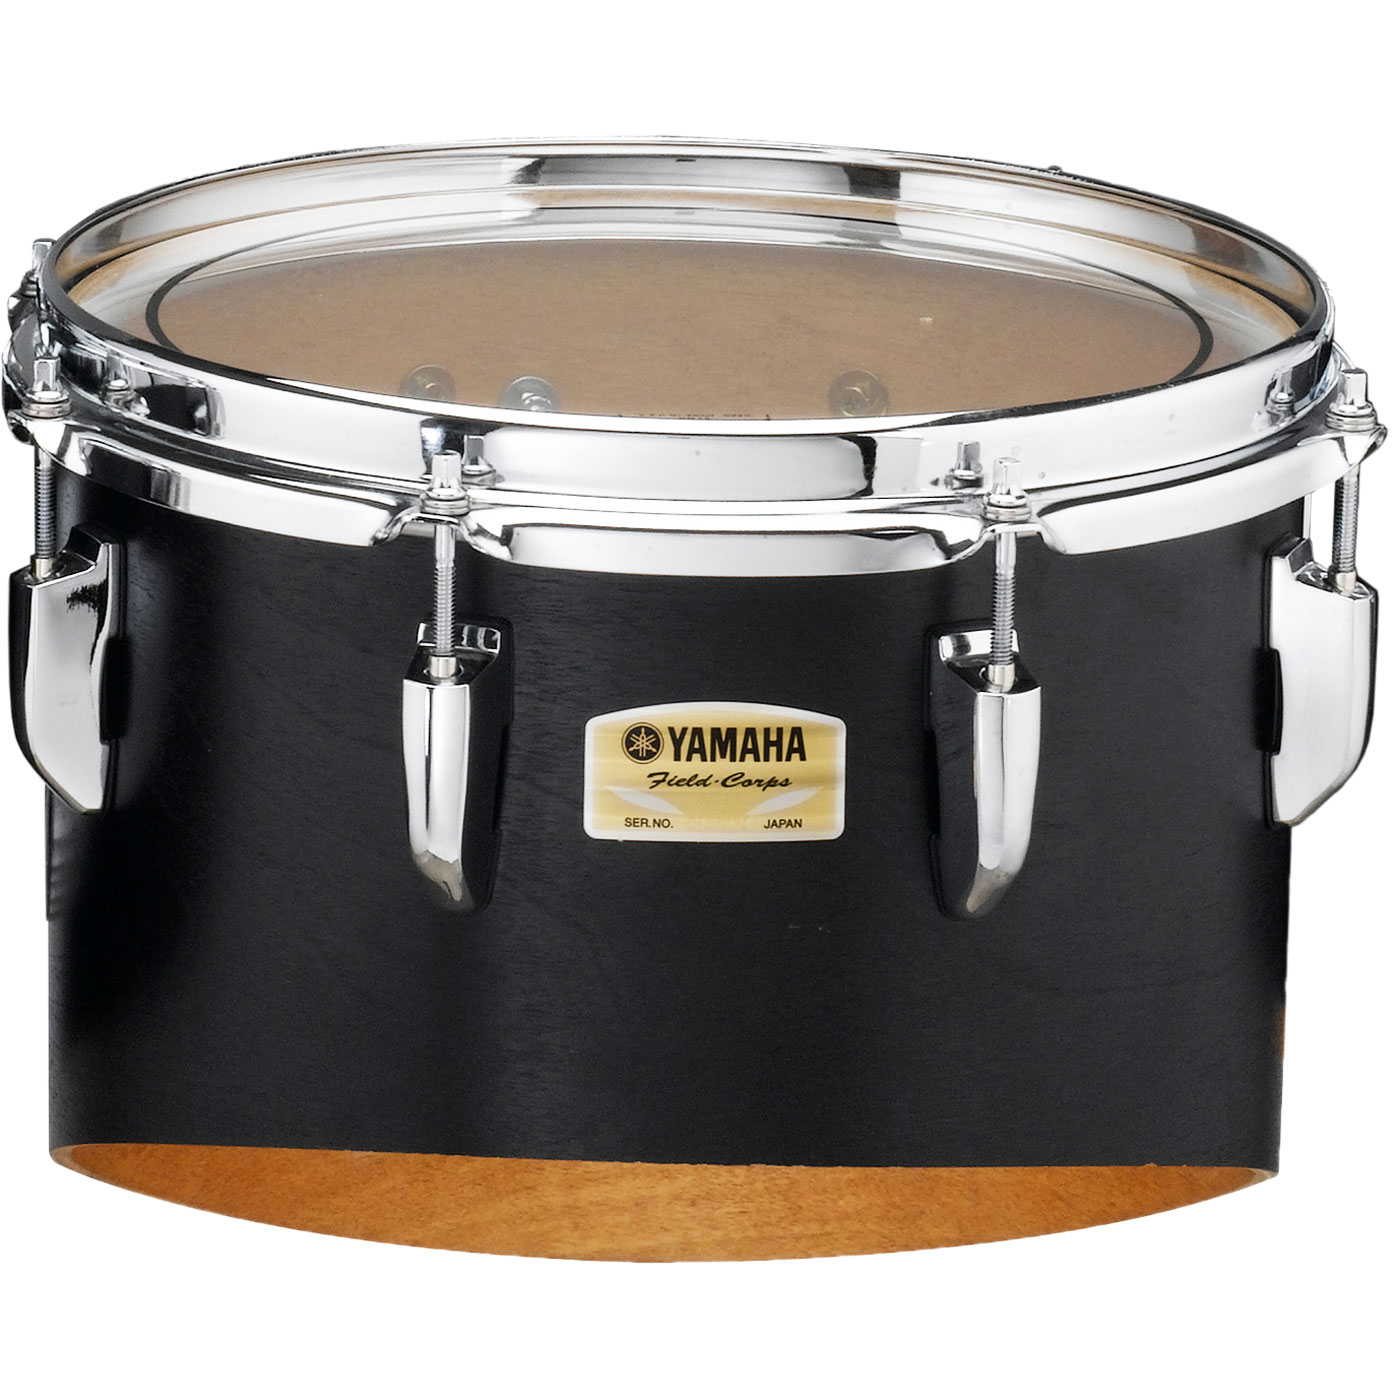 """Yamaha 12"""" 8200 Field-Corps Individual Marching Tenor Drum in Black Forest (Used)"""